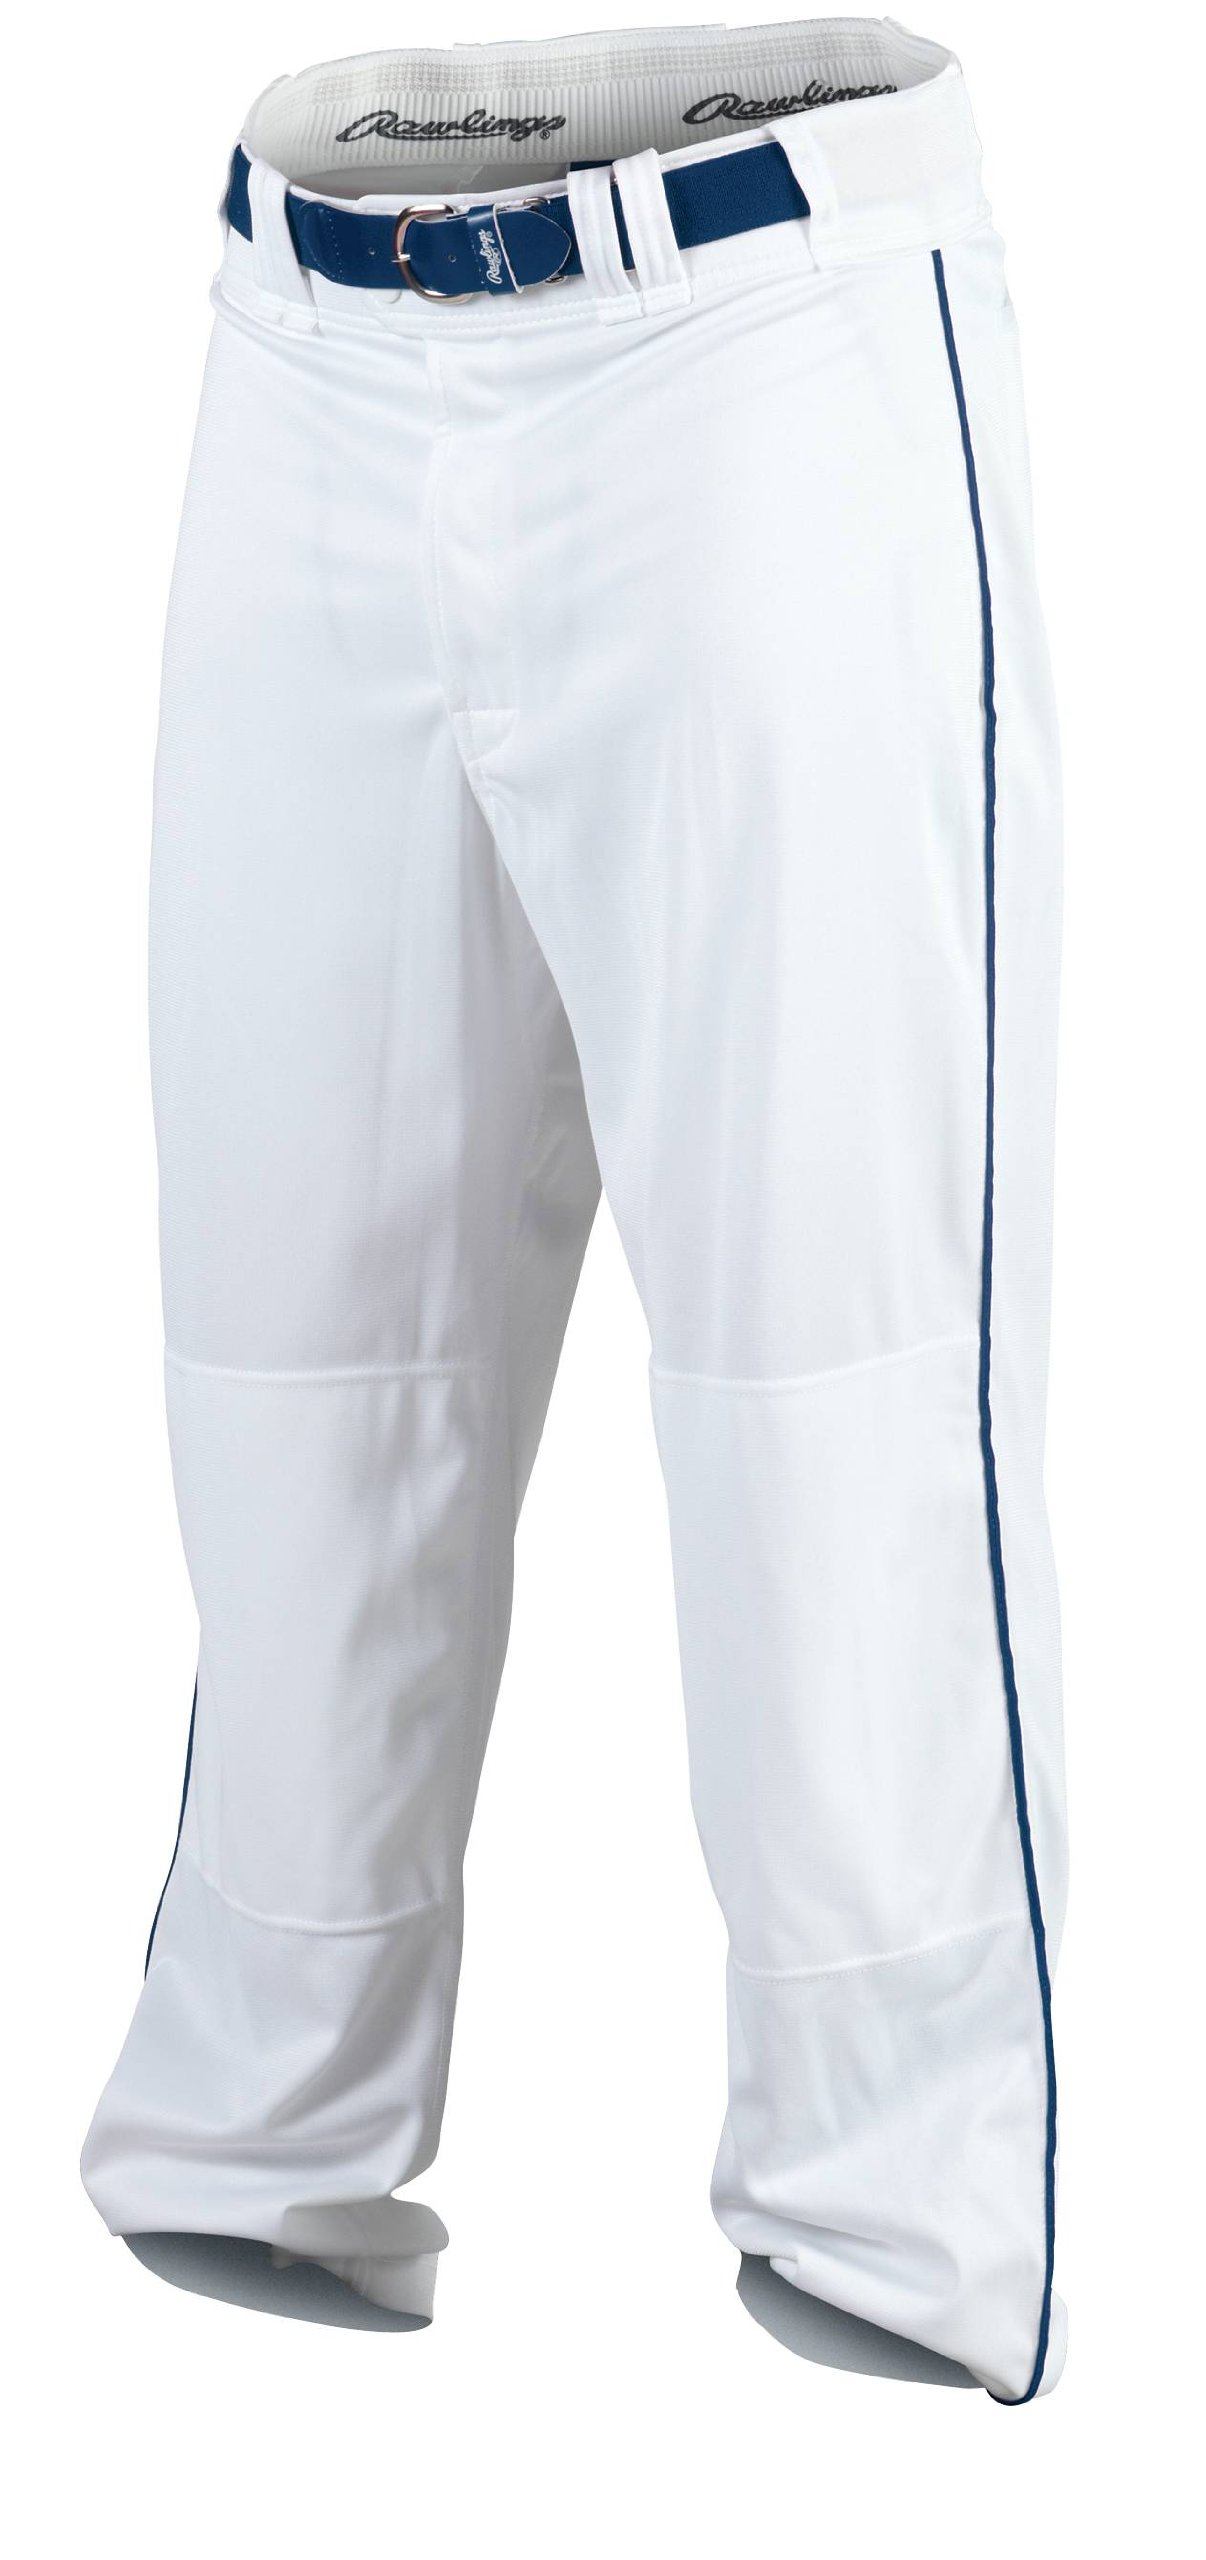 Rawlings Youth Baseball Pant (White/Navy, Large) by Rawlings